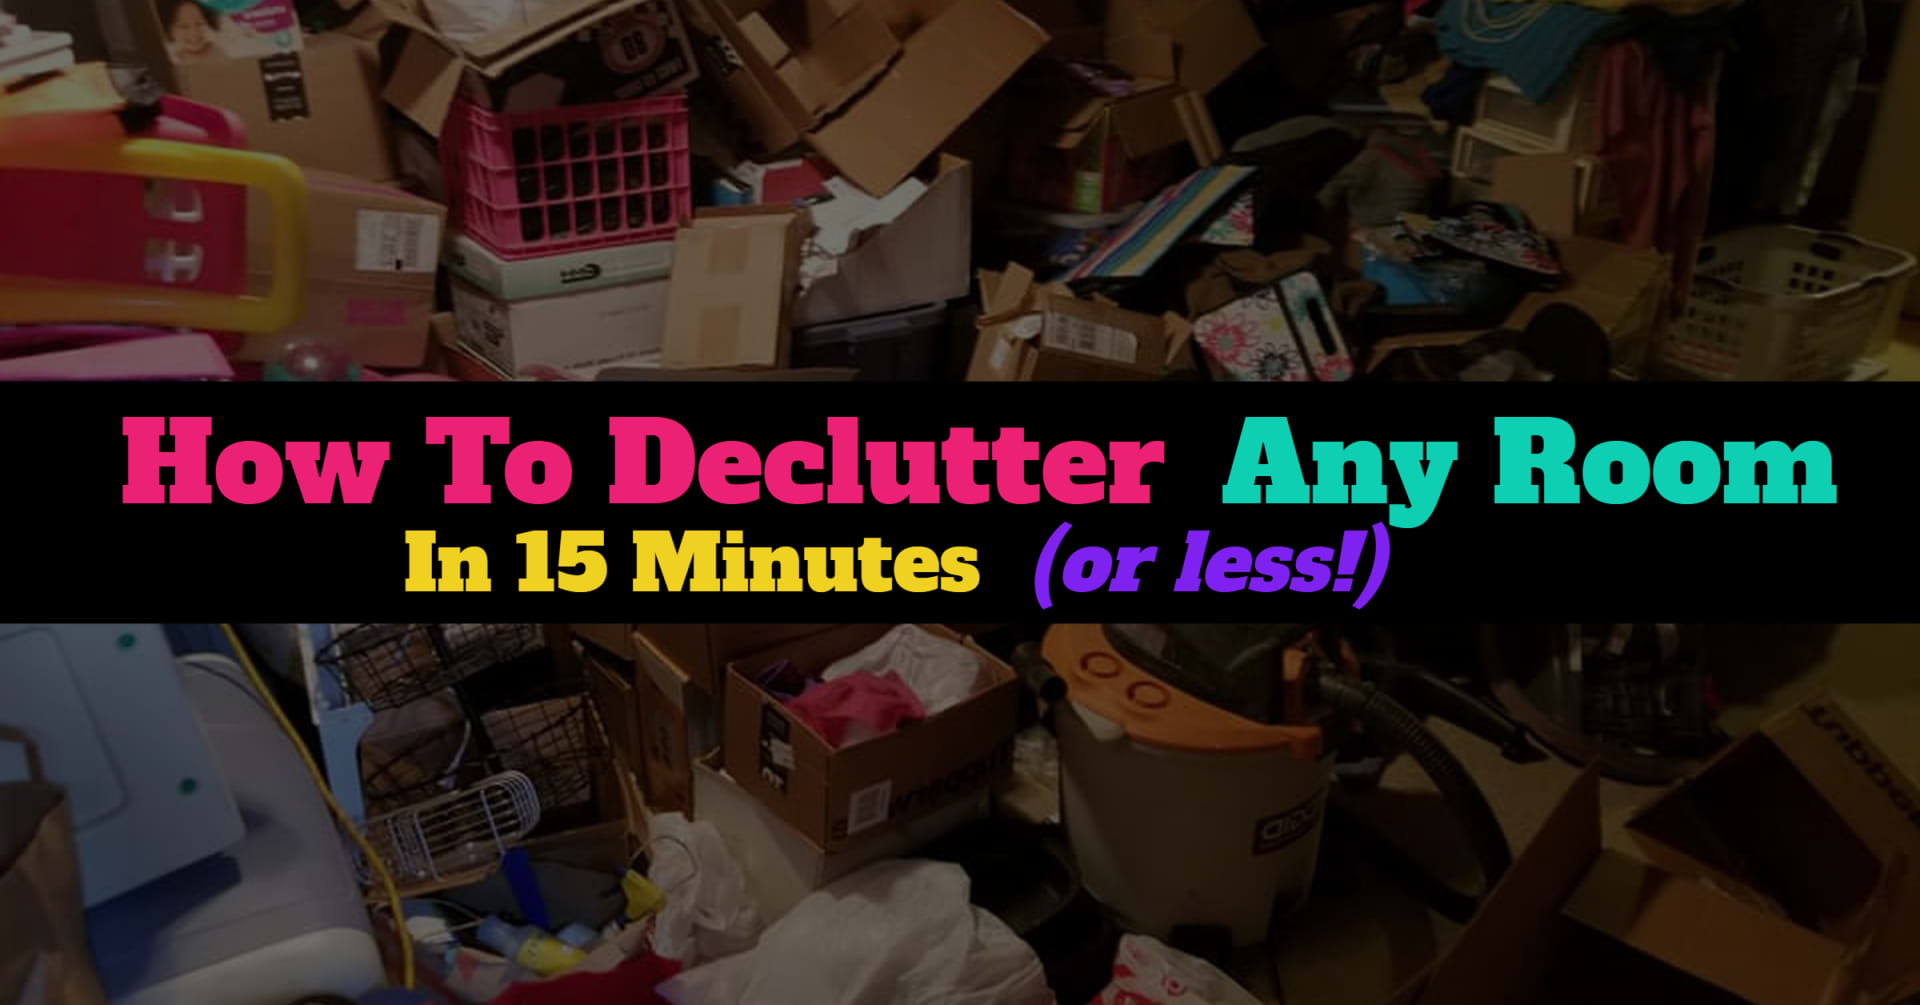 declutter any room in 15 minutes header